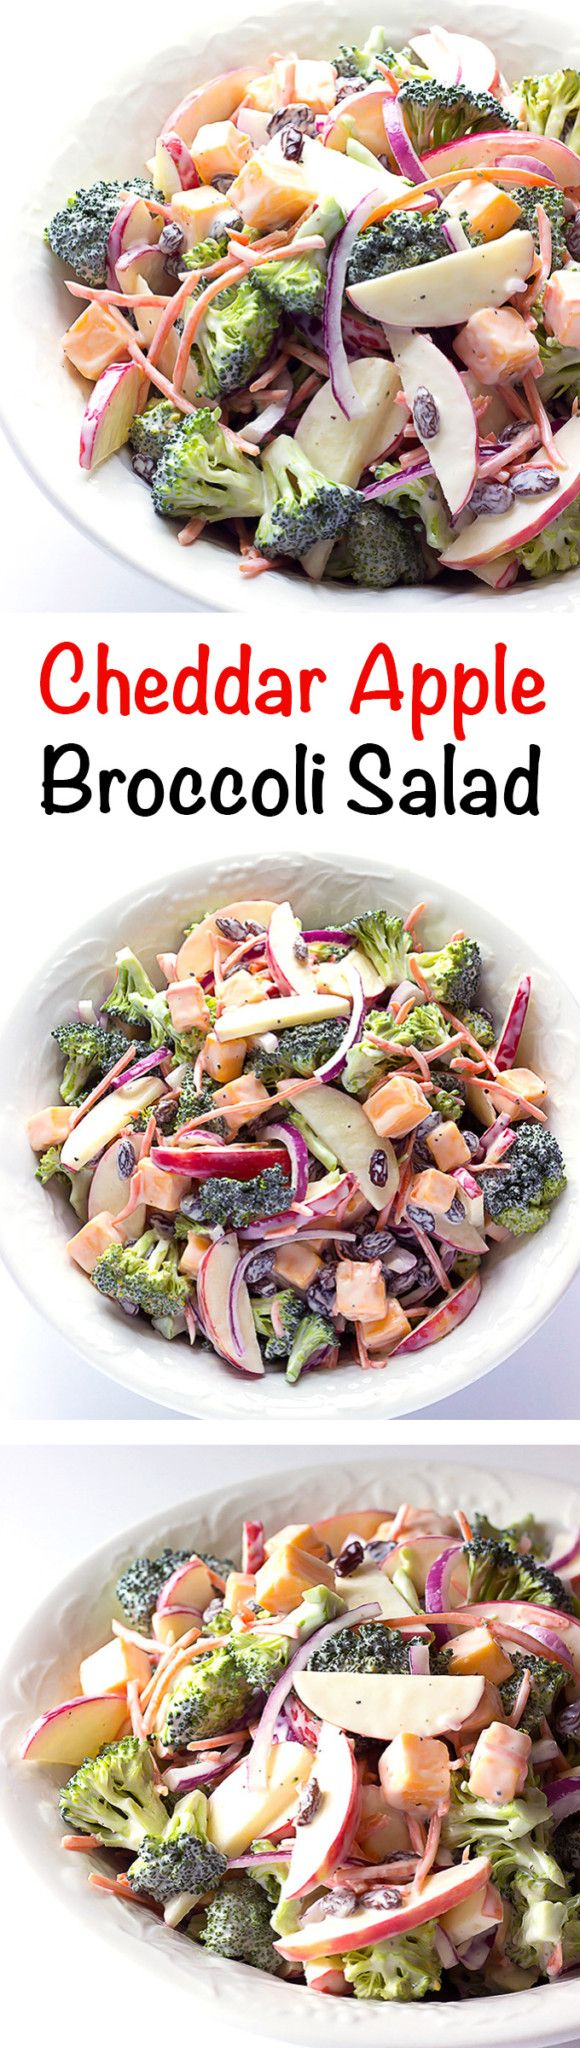 Cheddar Apple Broccoli Salad - The sweet tangy flavors of traditional broccoli raisin salad plus sweet chopped apples and tangy cheddar cheese cubes.  Great for a cookout!